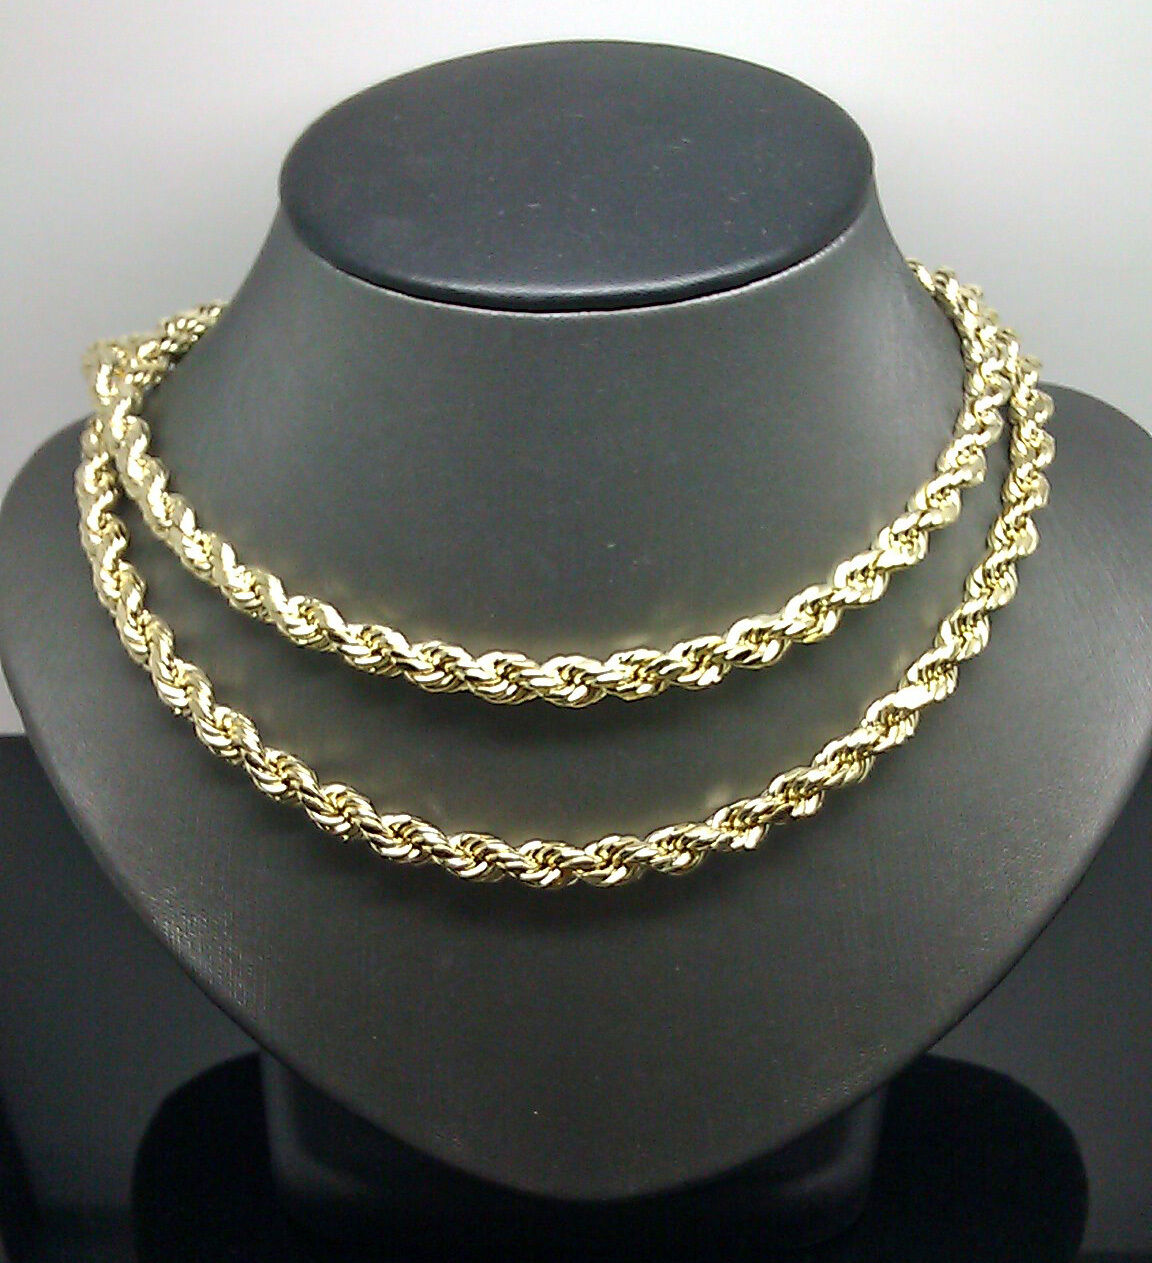 10k Gold Rope Chain 2 - 8 mm 16 Inch-30 Inch men women Necklace Diamond cut REAL 2